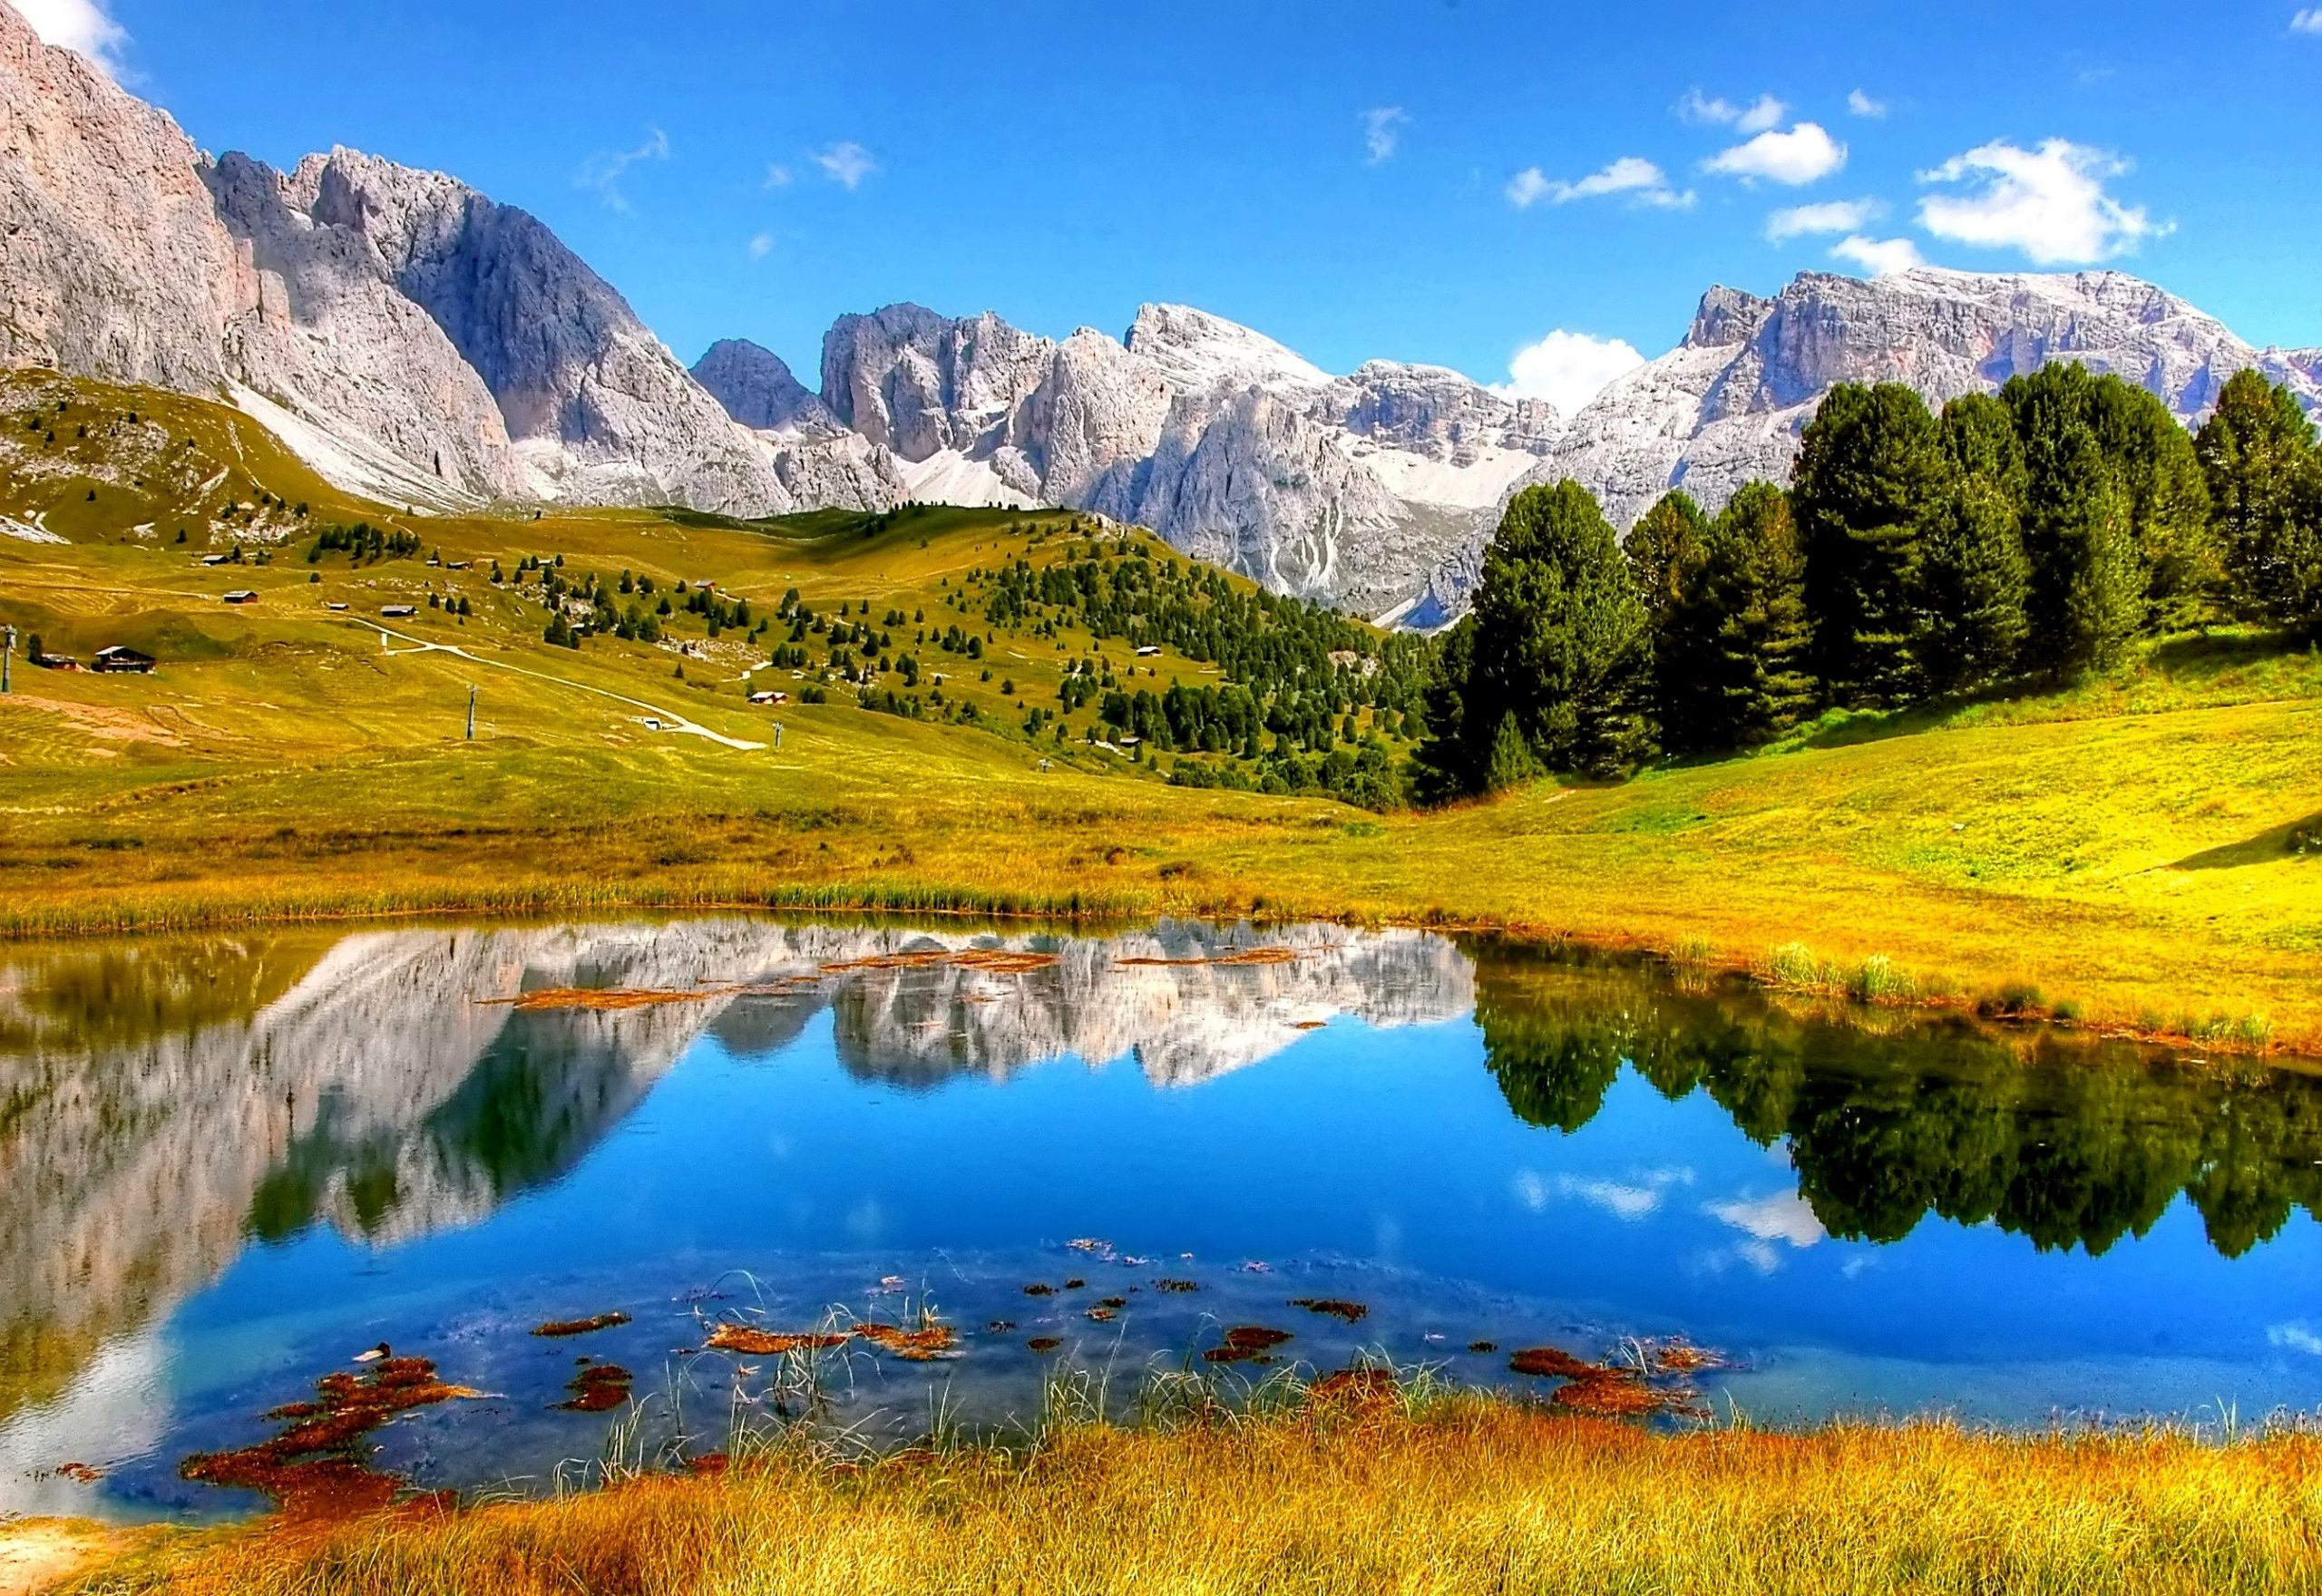 mountains lake sunny day summer landscape scenic reflection 2685x1846 1193